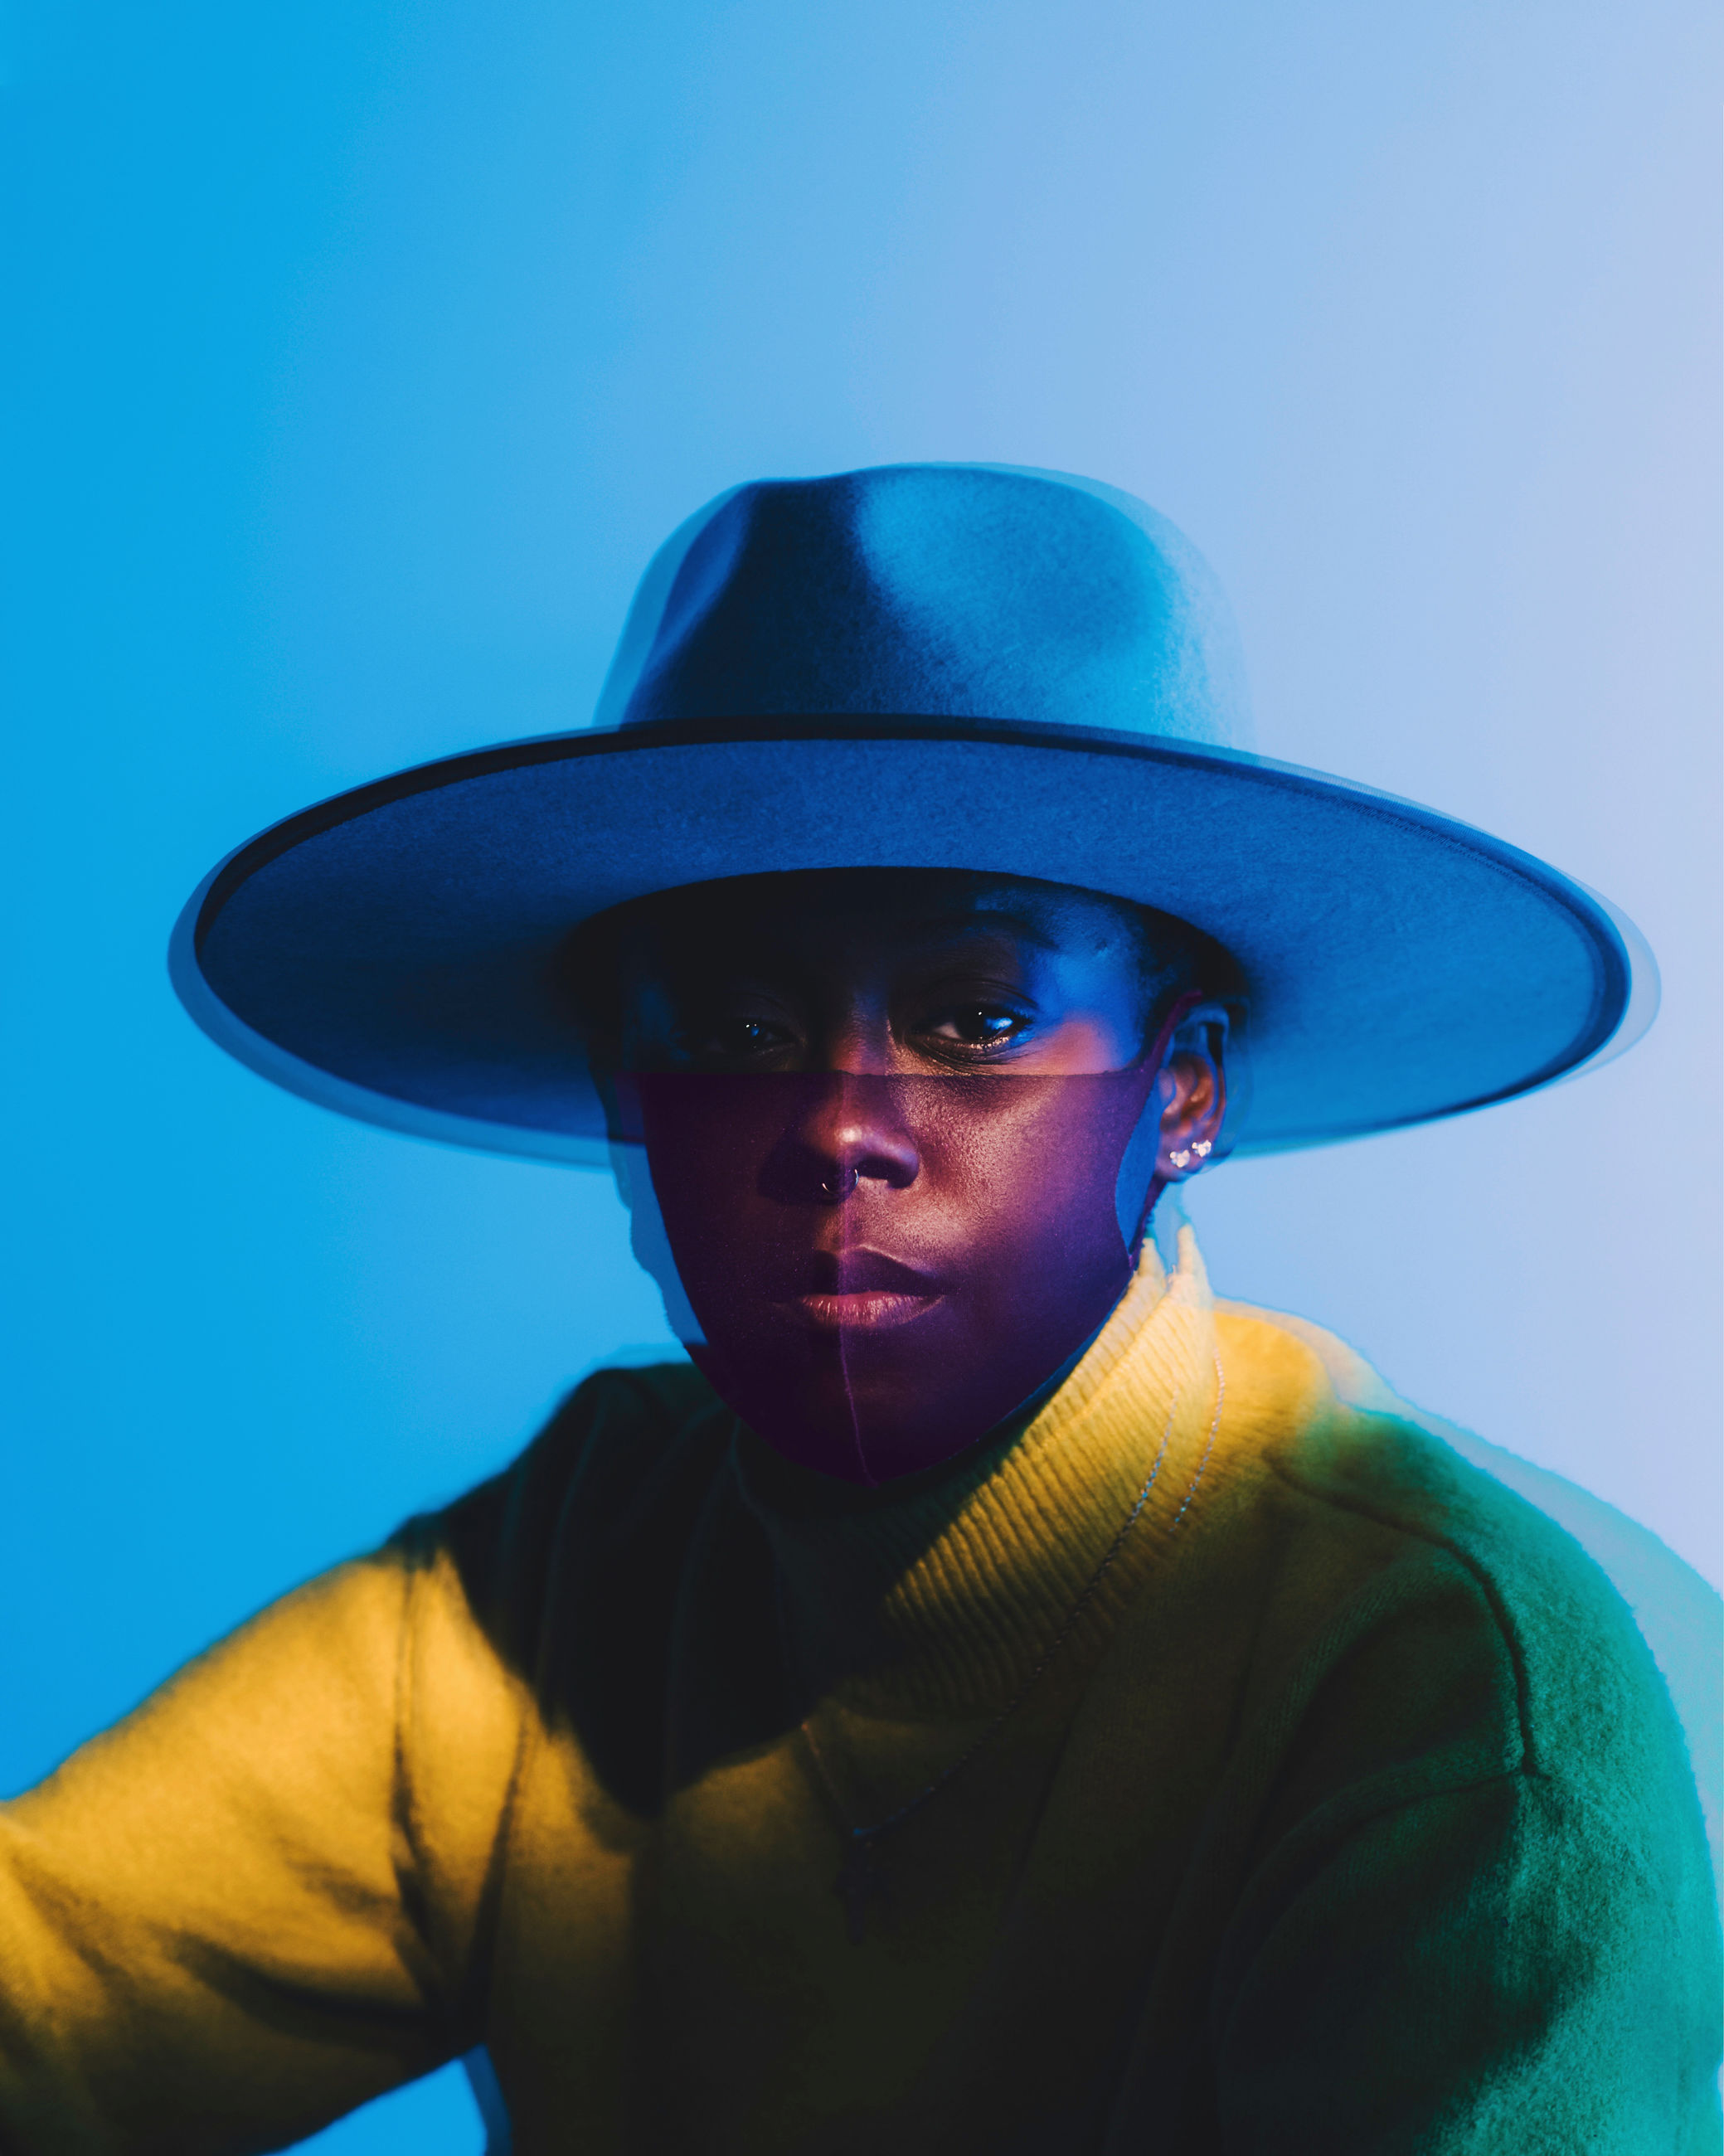 blue, portrait, one person, hat, clothing, adult, headshot, studio shot, front view, blue background, colored background, young adult, person, men, fashion accessory, looking at camera, fashion, human face, fedora, indoors, looking, sun hat, serious, casual clothing